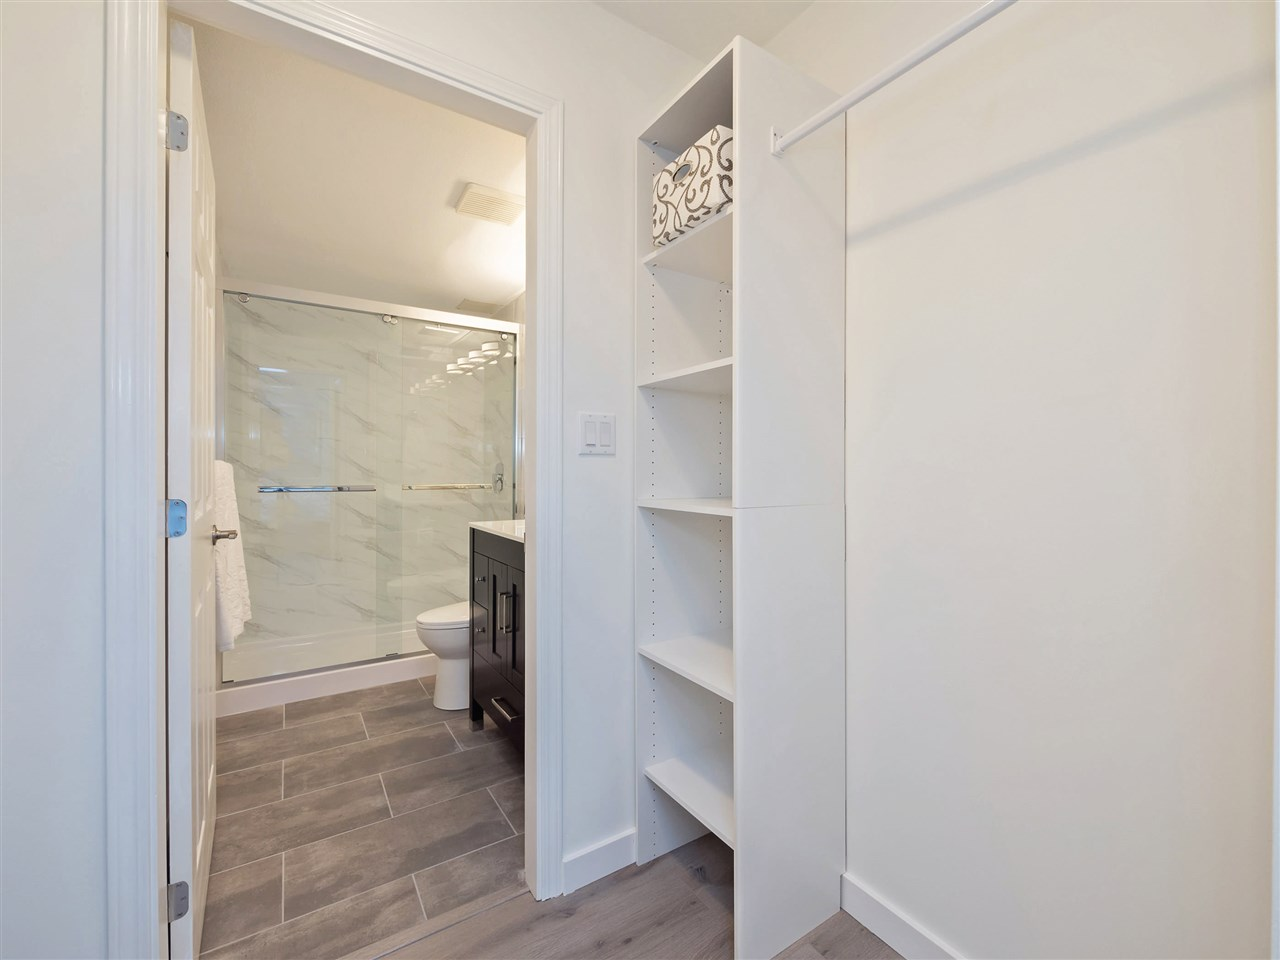 Condo Apartment at 211 1148 WESTWOOD STREET, Unit 211, Coquitlam, British Columbia. Image 14